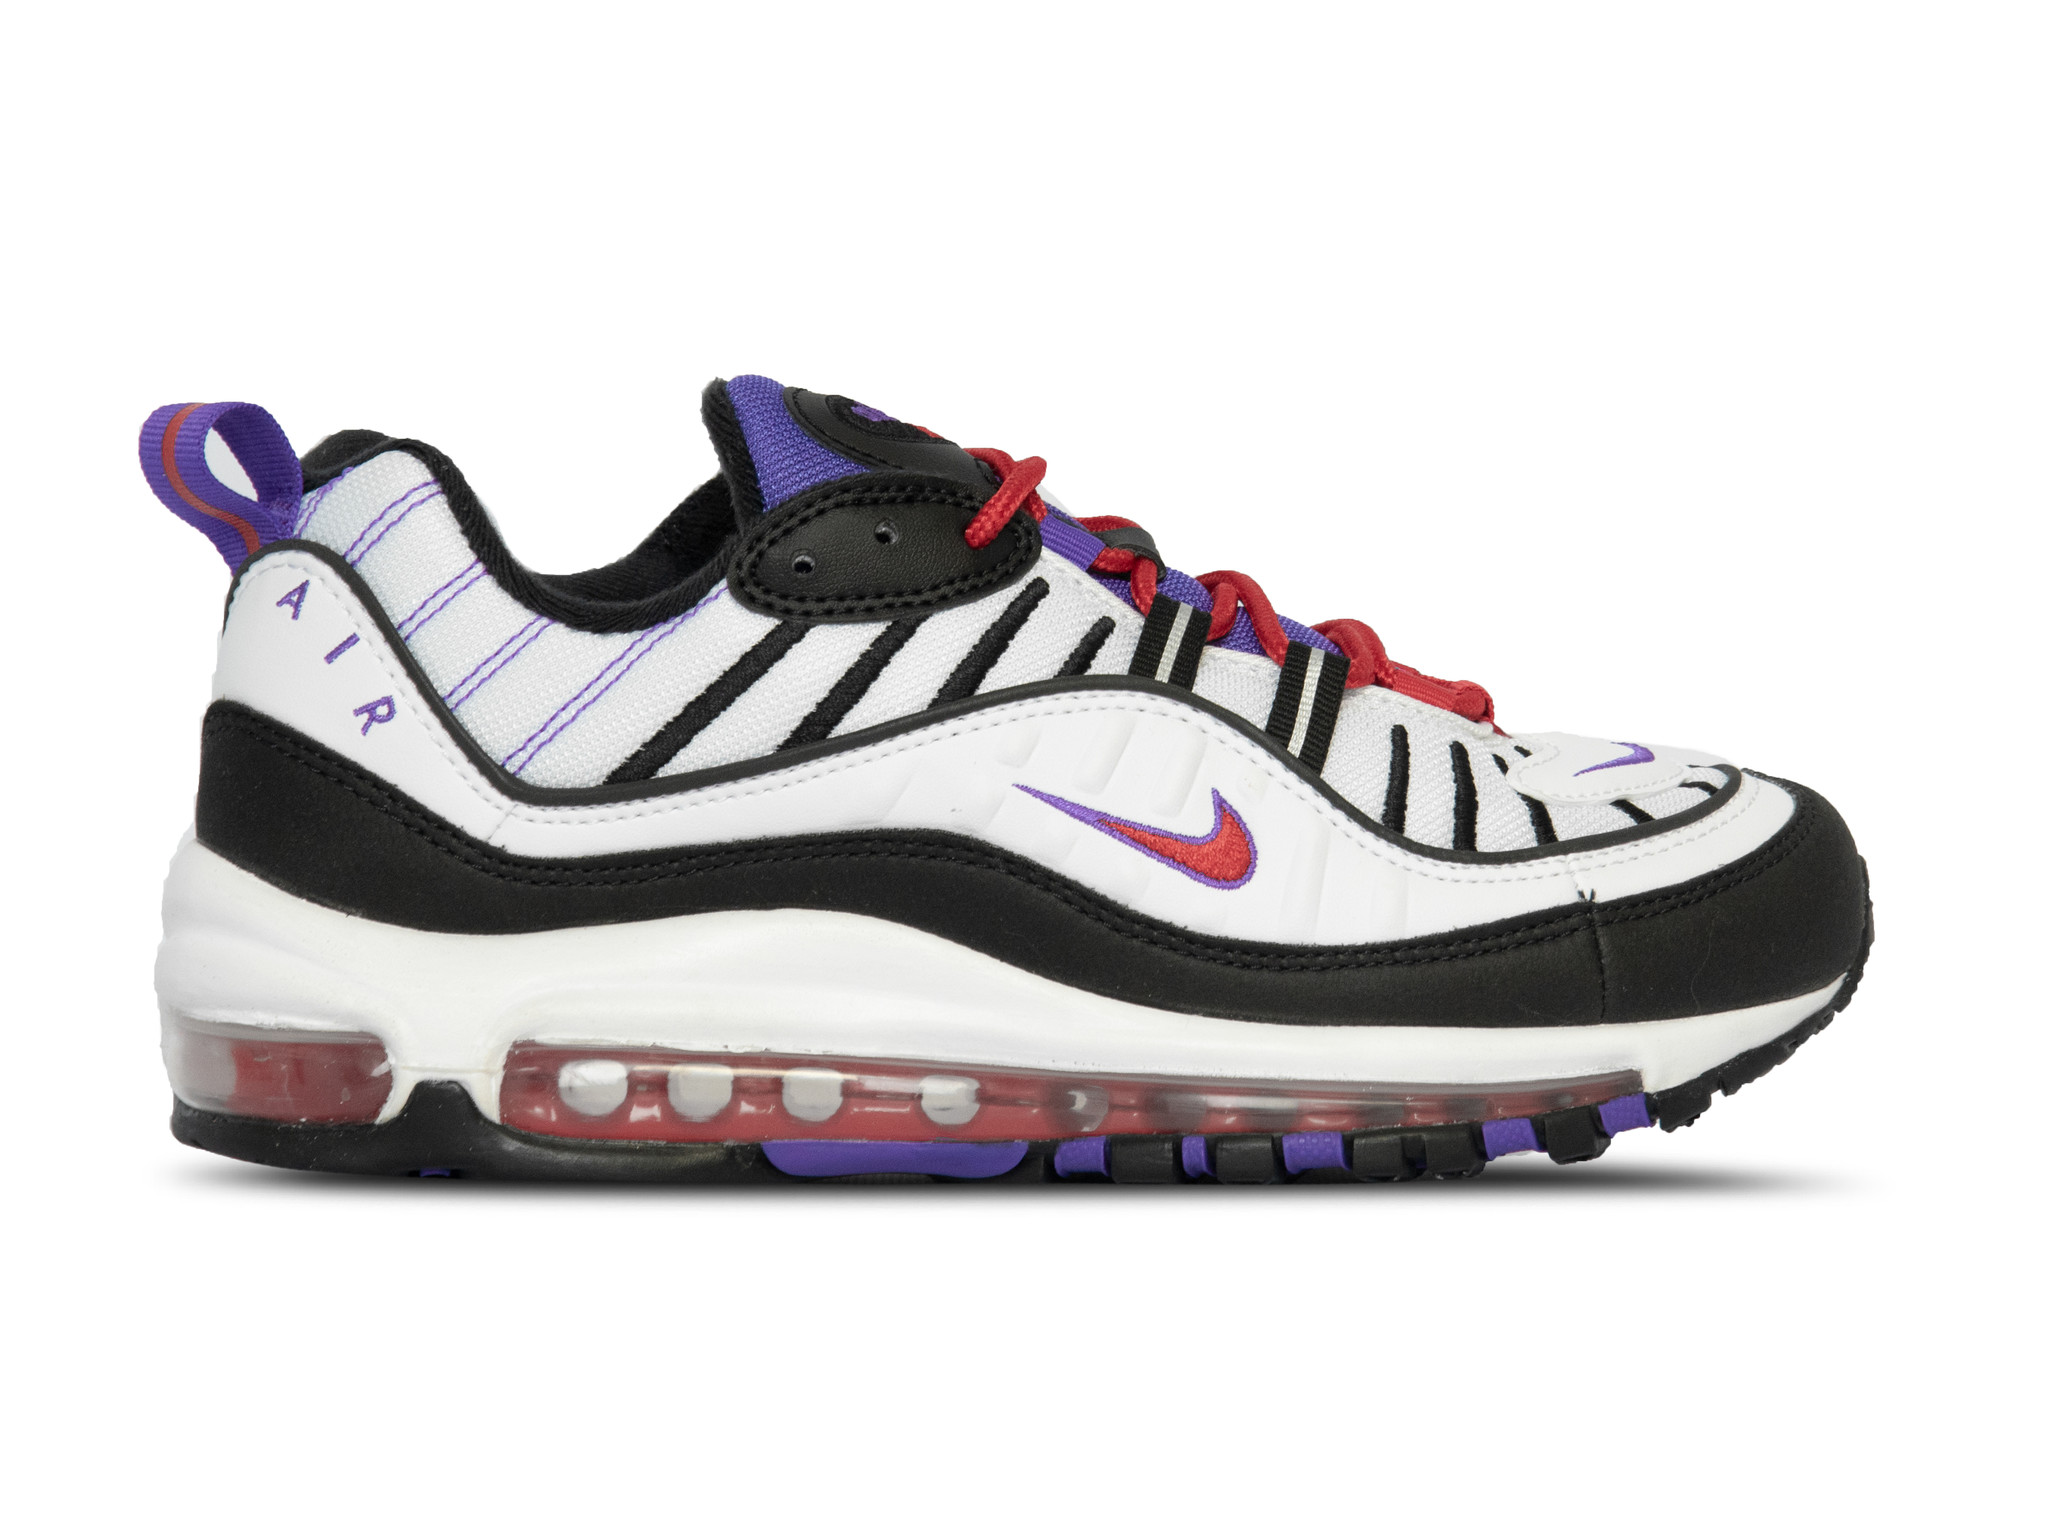 nike air max 98 white/black-psychic purple